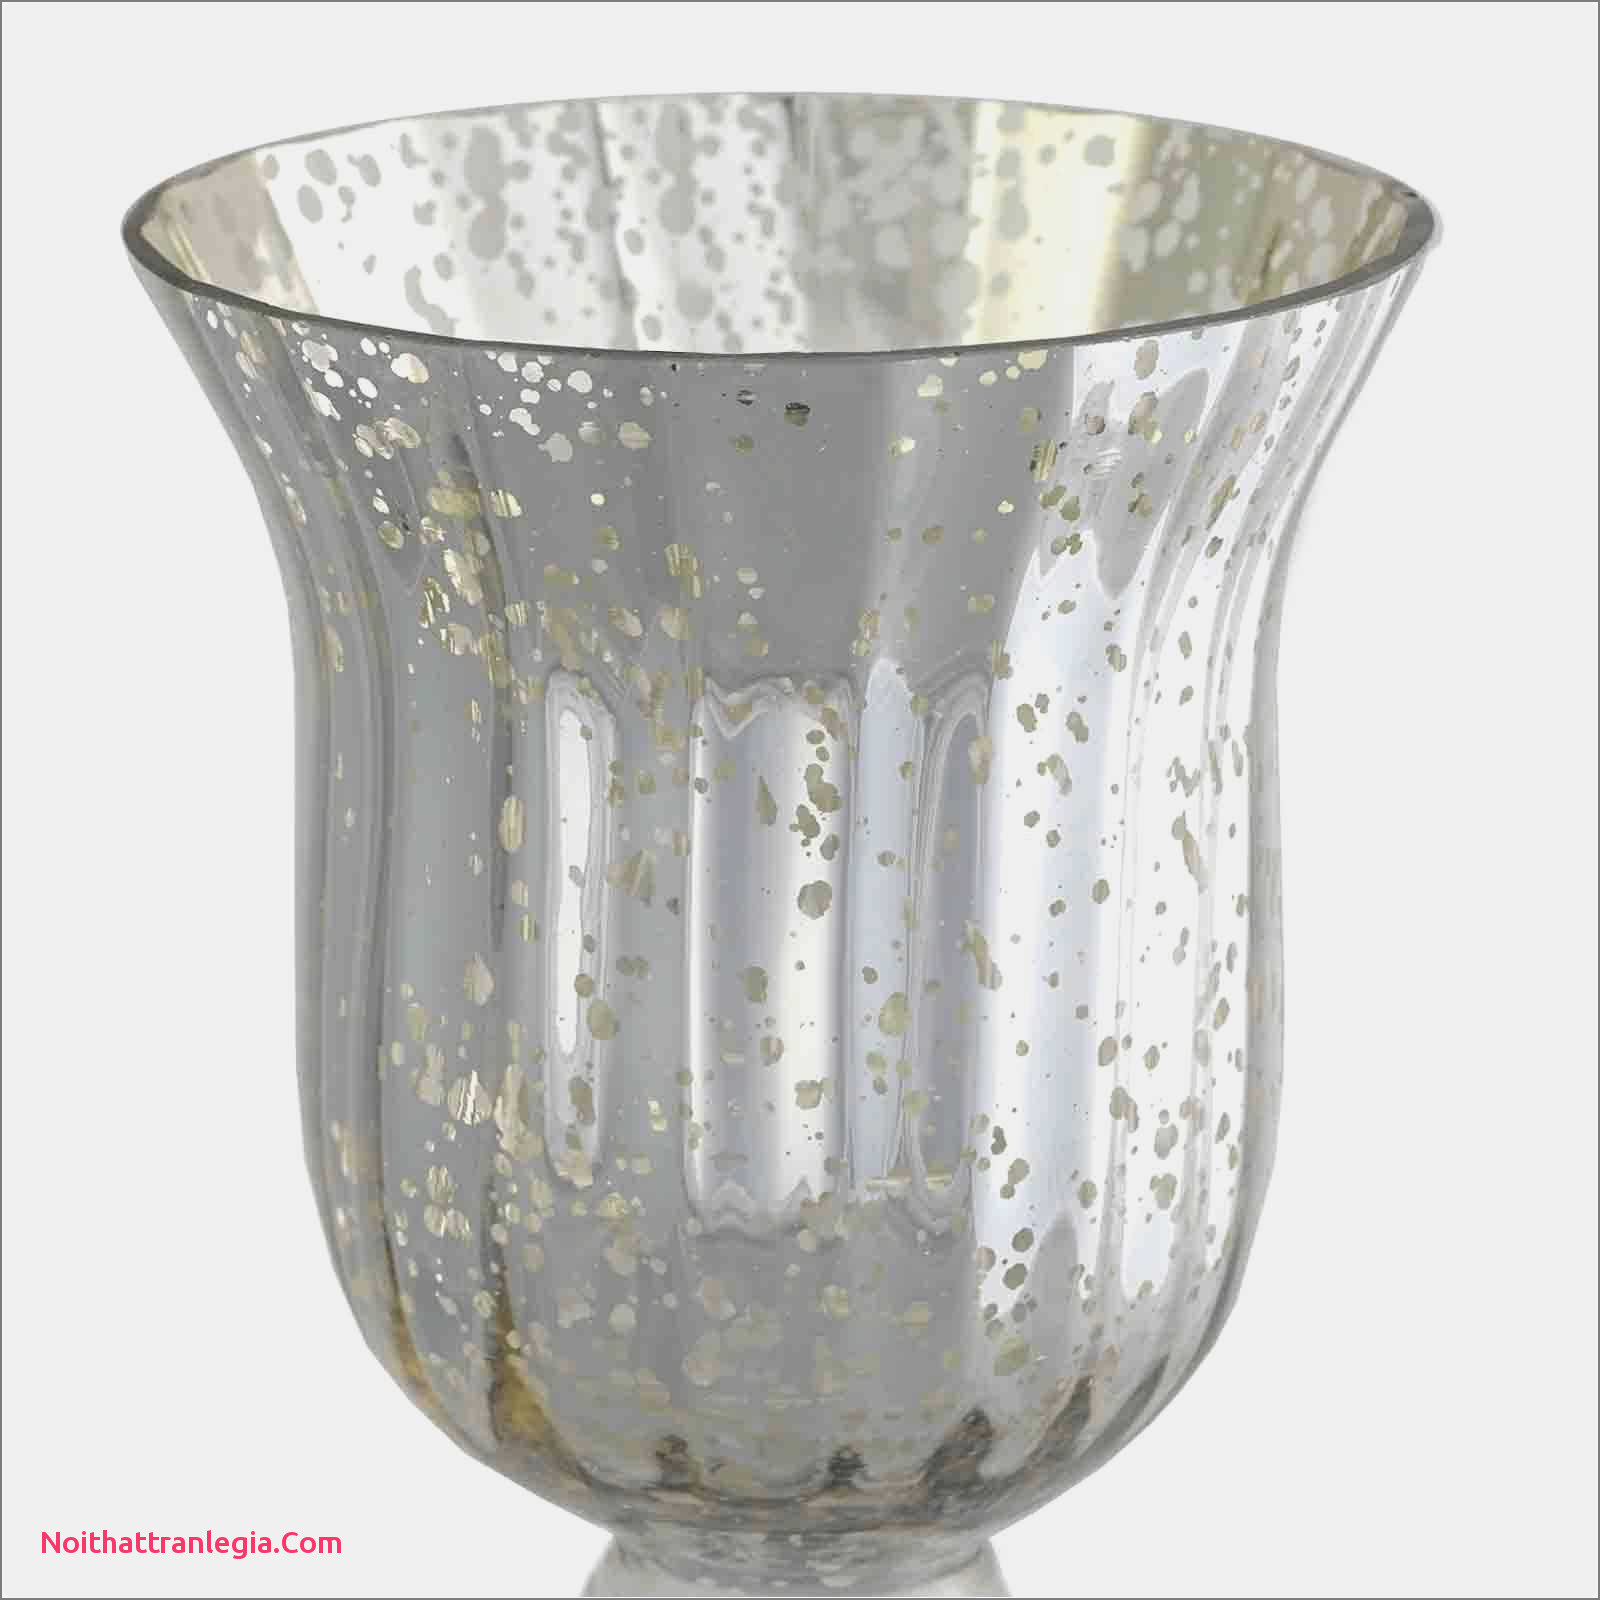 How to Decorate Small Glass Vases Of 20 Wedding Vases Noithattranlegia Vases Design In Wedding Guest Gift Ideas Inspirational Candles for Wedding Favors Superb Pe S5h Vases Candle Vase I